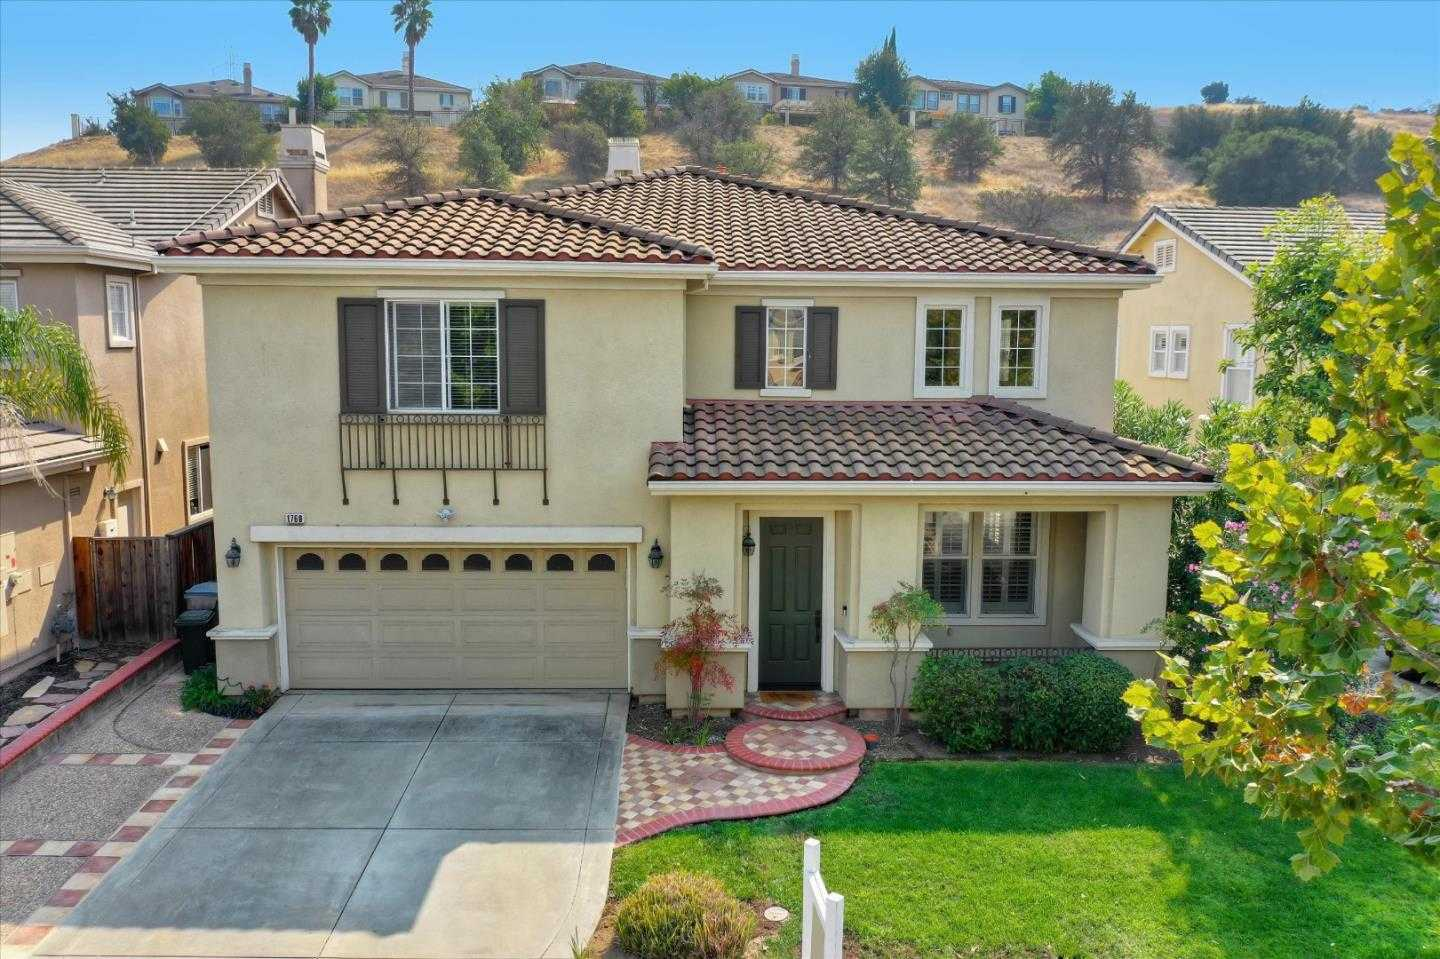 $1,649,000 - 5Br/4Ba -  for Sale in San Jose